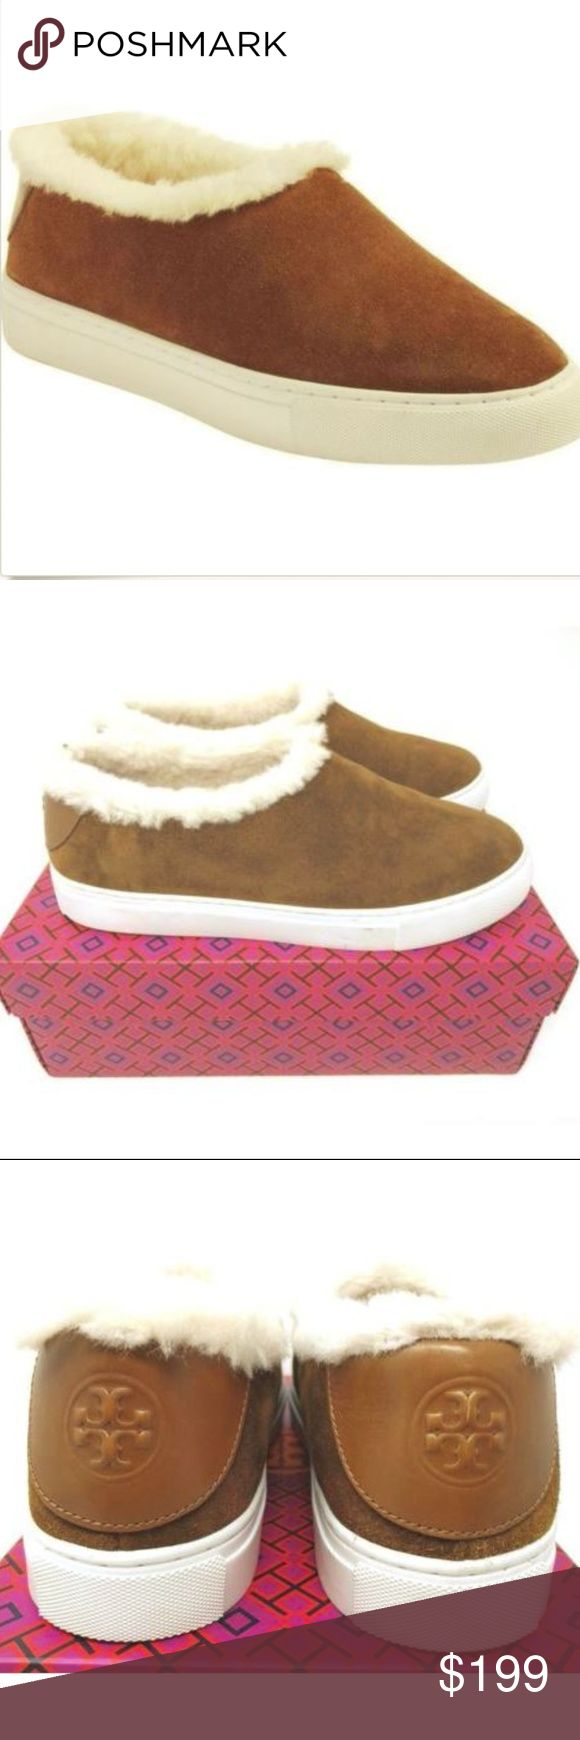 Tory Burch 8 Miller Shearling Lined Suede Sneakers Tory Burch 8 Festival Brown Miller Shearling Lined Suede Sneakers Shoes NEW $268  Nordstrom Rack clearance shoes have been tried on in store, which shows on the bottoms of the shoes. Fits true to size. Round toe; slip on. Real sheep fur; dyed; fur origin: Australia. Suede upper, sheep fur lining, rubber sole. Tory Burch Shoes Flats & Loafers